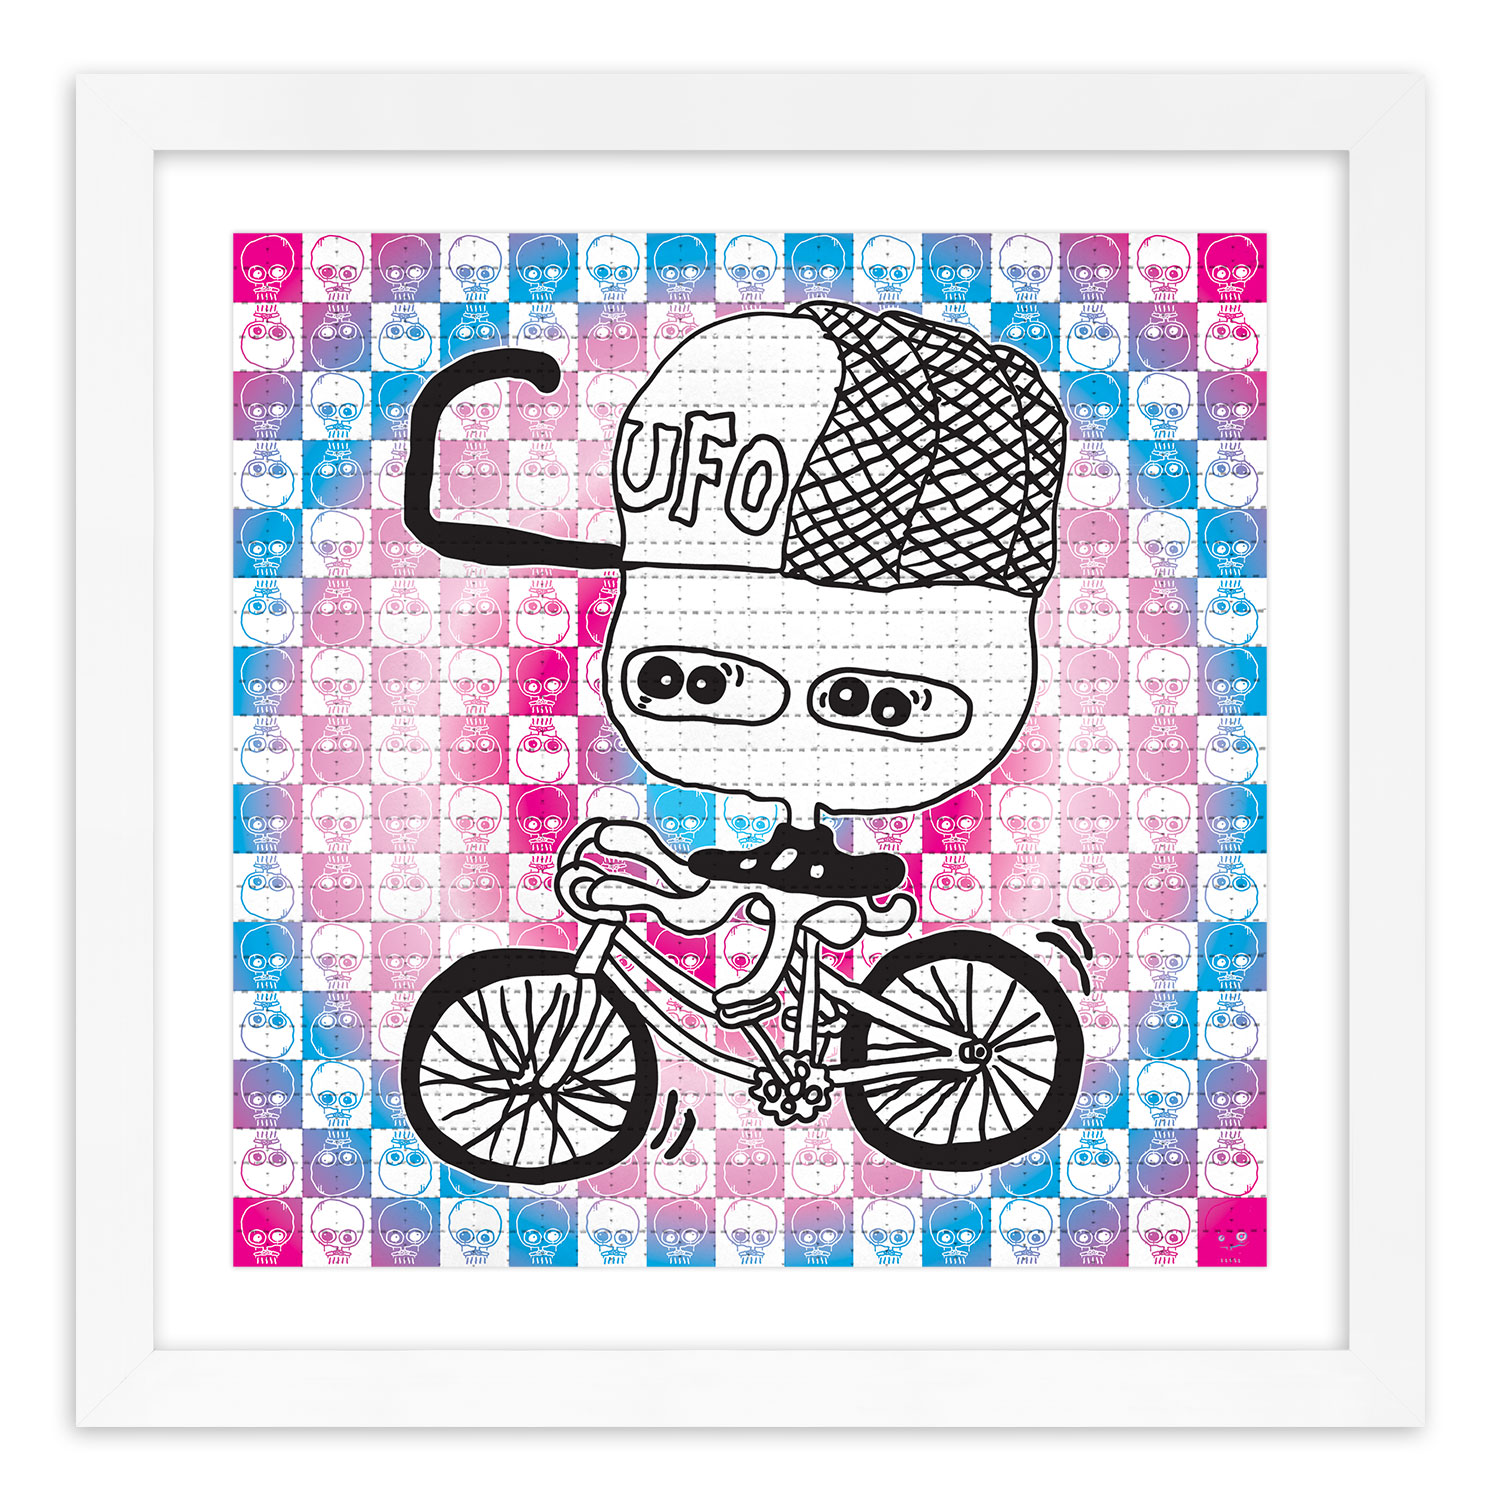 UFO 907 Art Print - Bicycle - Blotter Edition